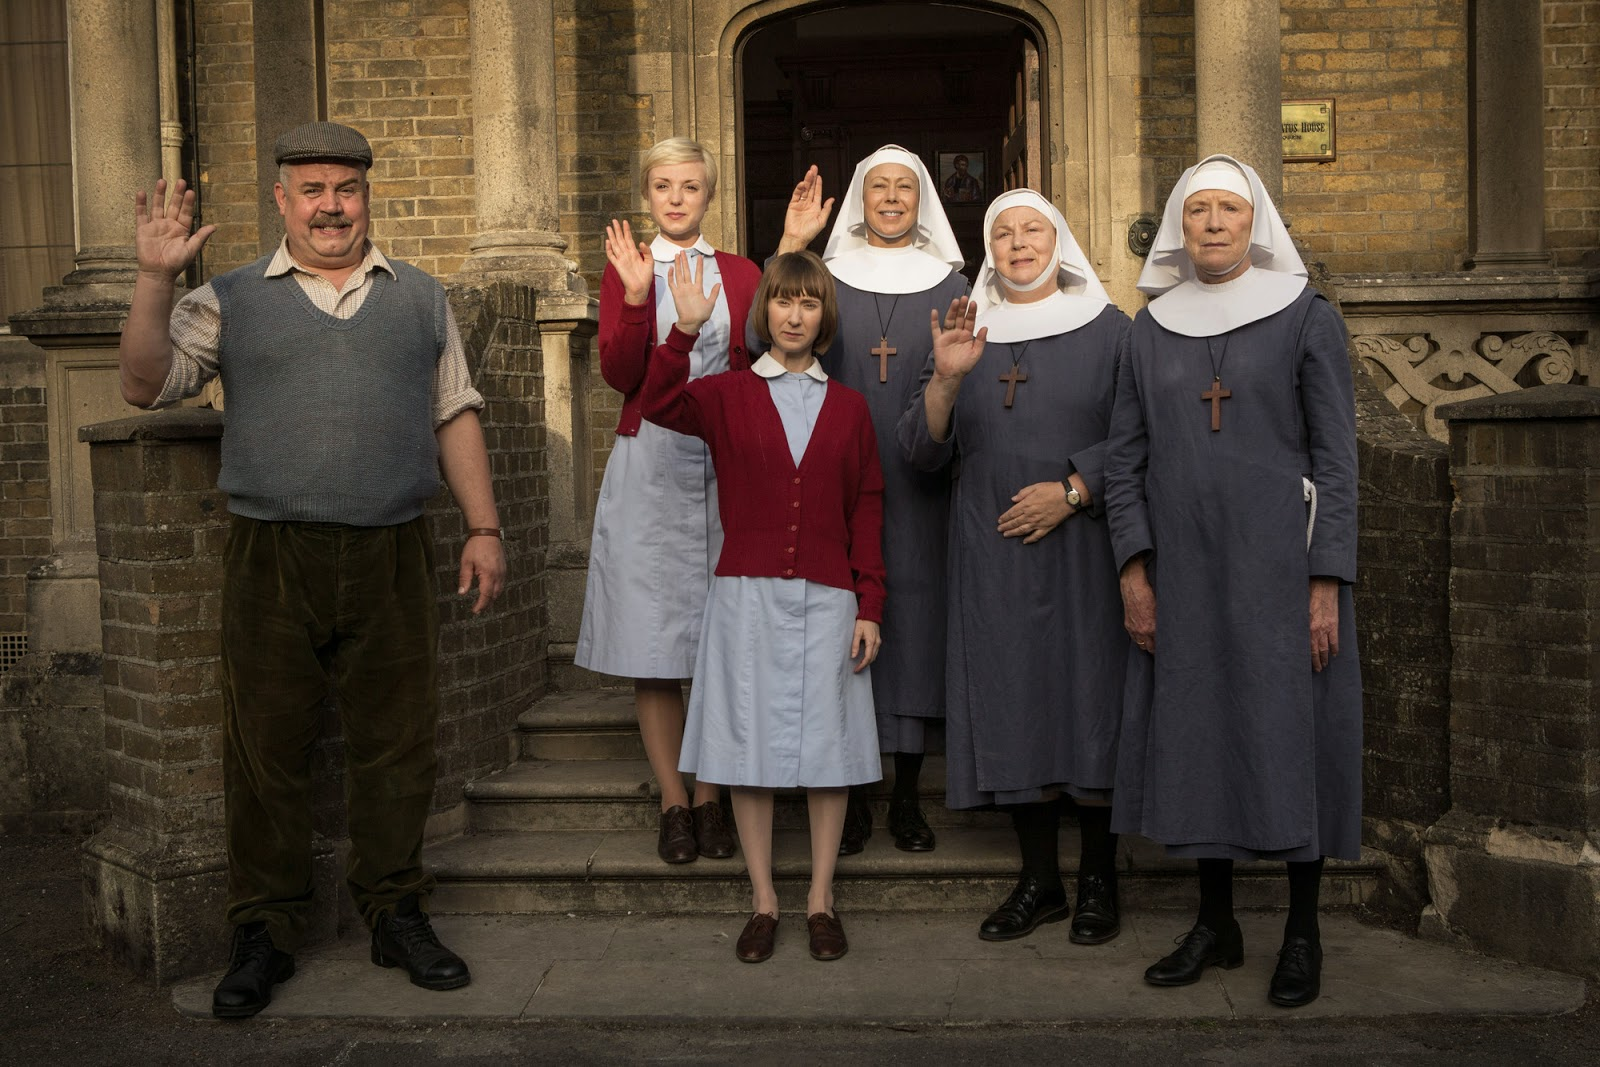 We're Wicked Smaht: The British Be Invadin Philip Worth Call The Midwife